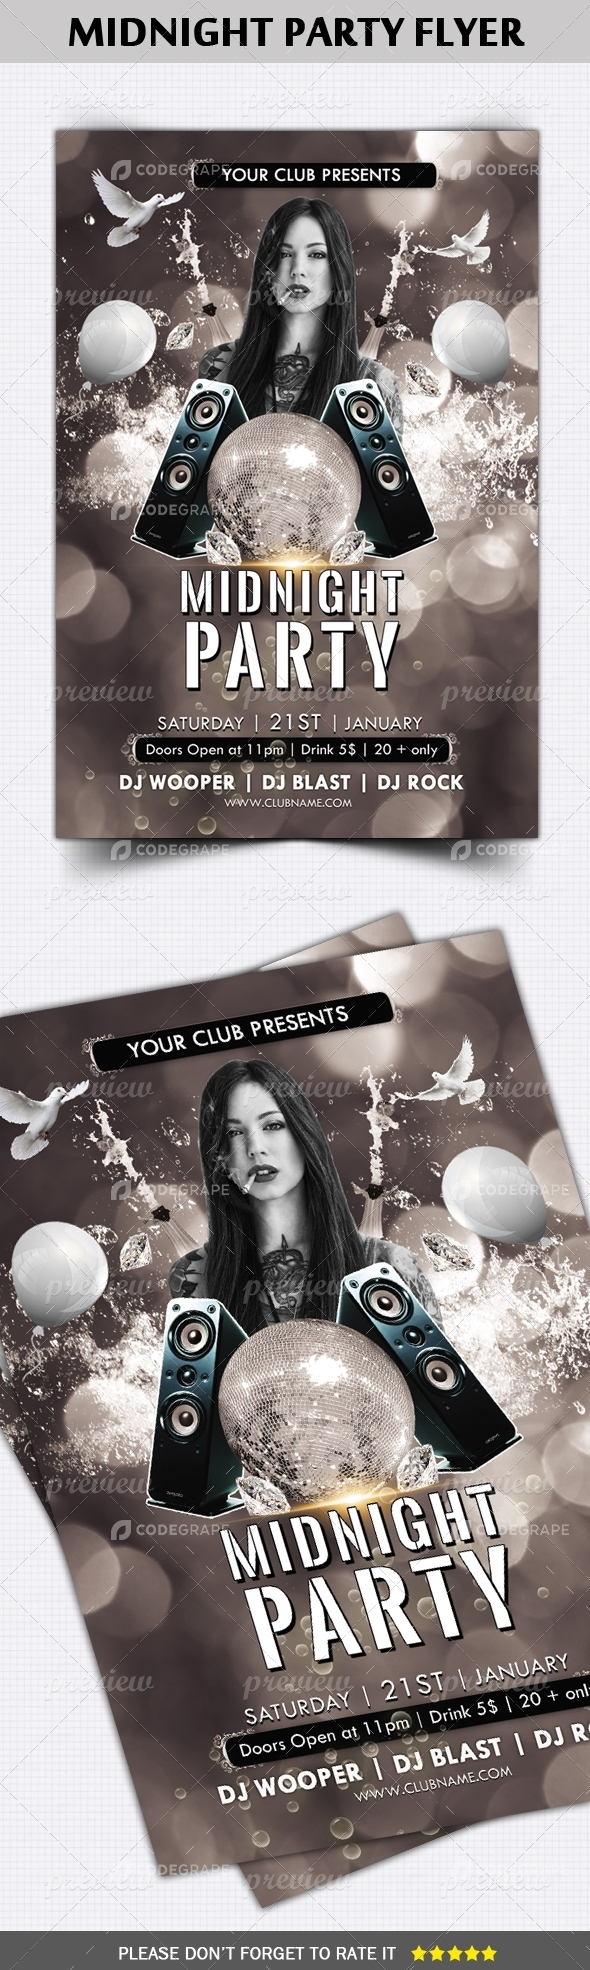 Midnight Party Flyer Template